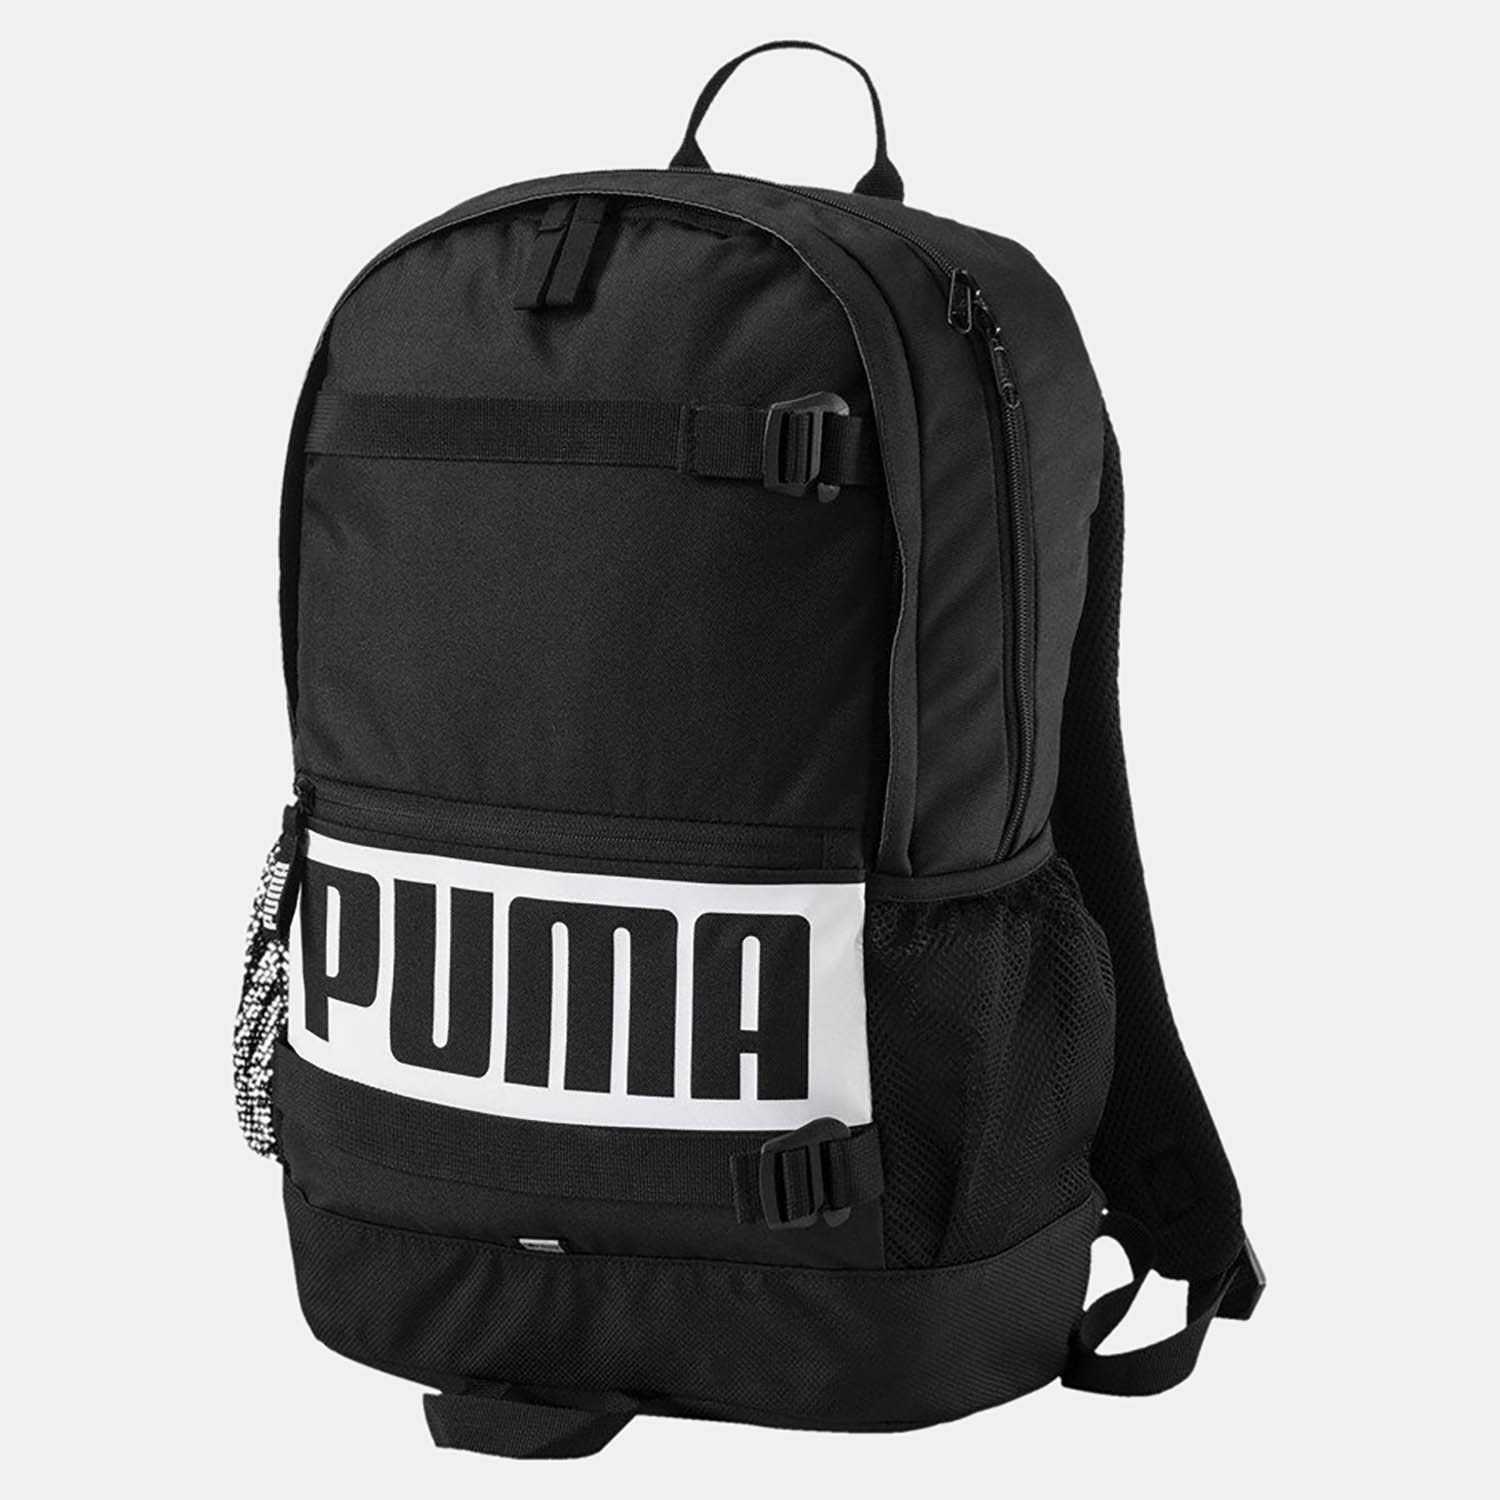 Puma Deck Backpack | Large (9000016103_1469)